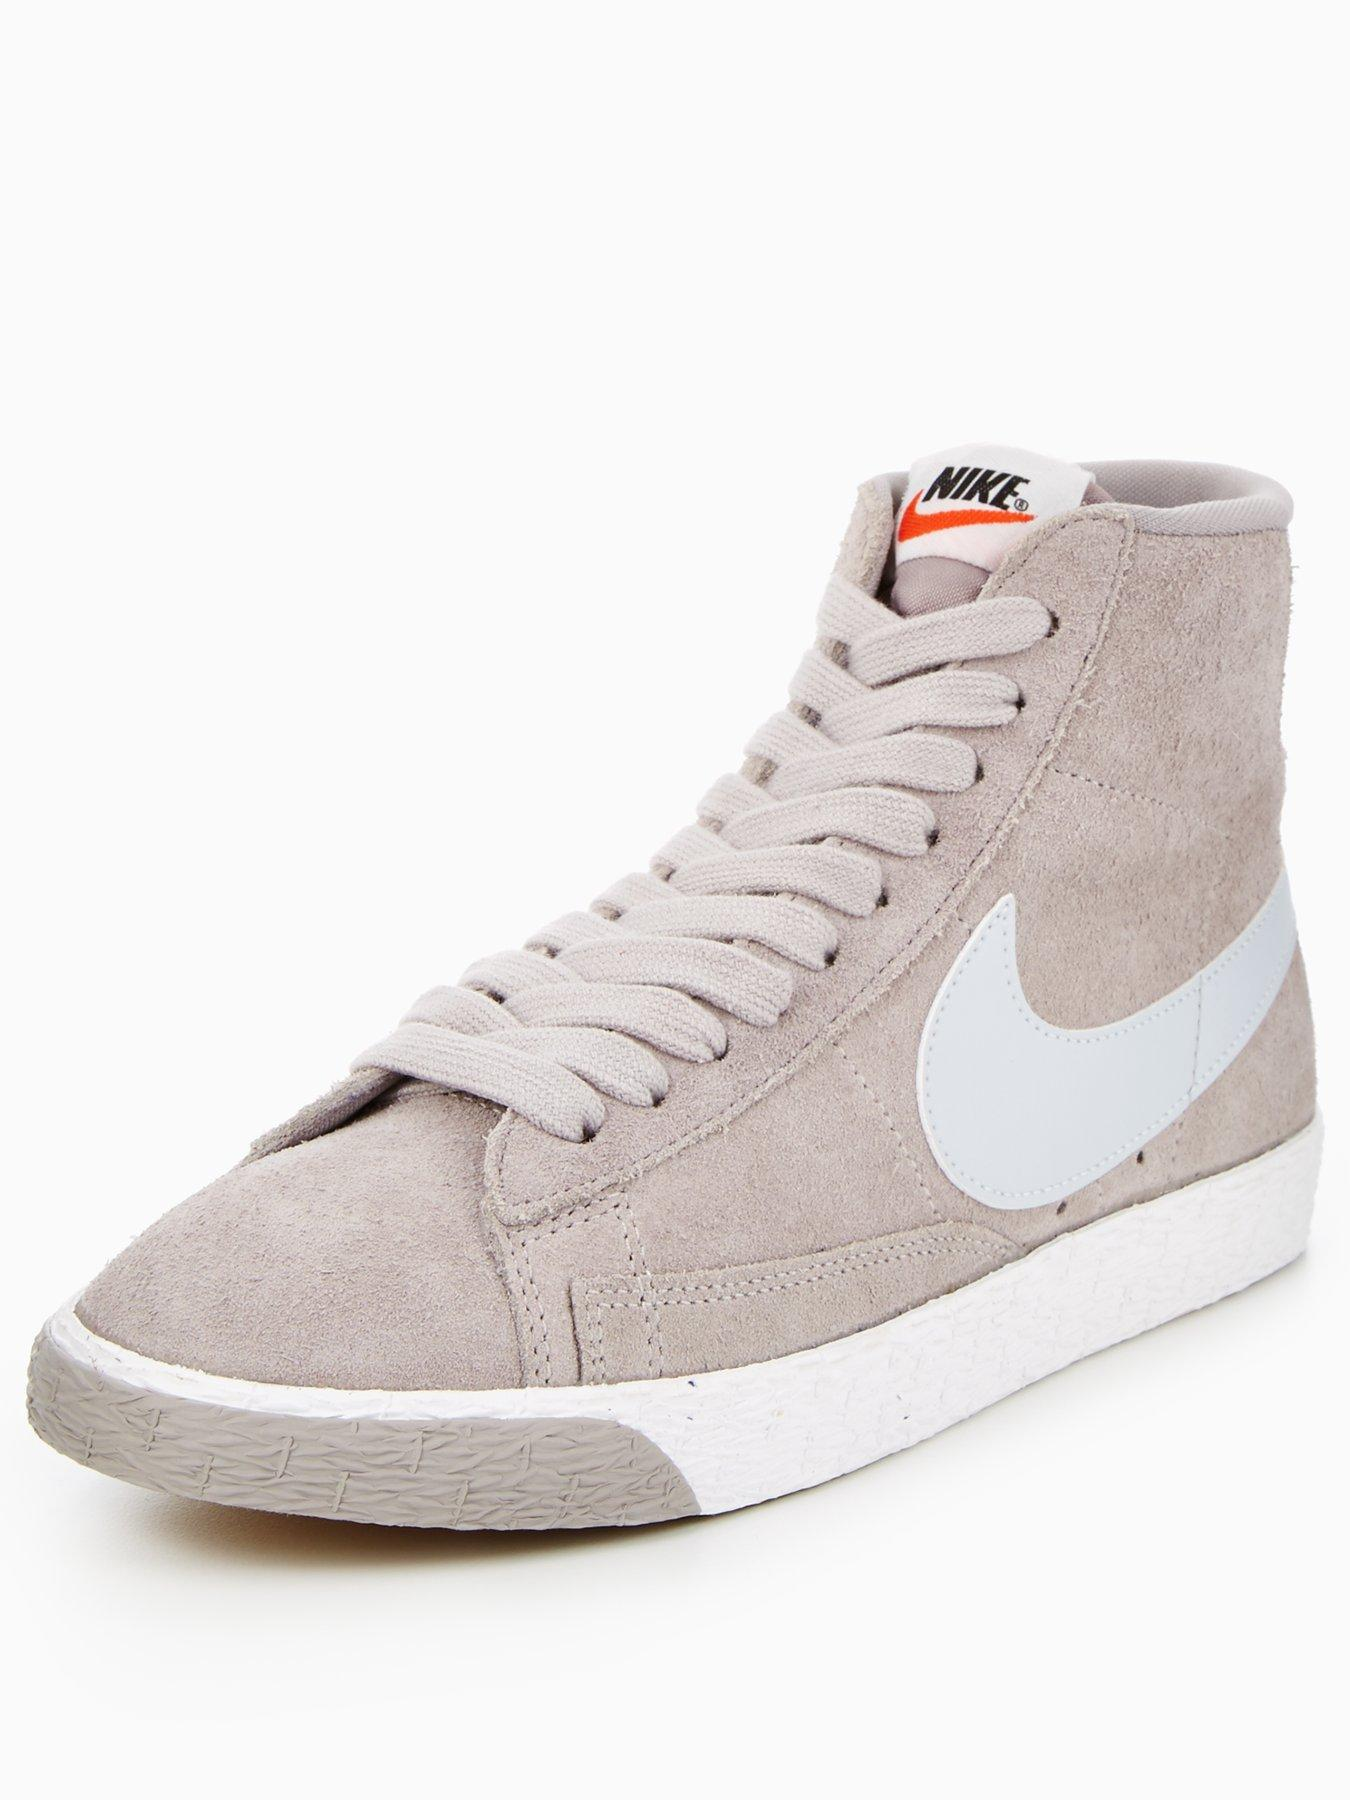 Discount Nike Blazer Mid Vintage Suede Stone/White Trainers for Women Online